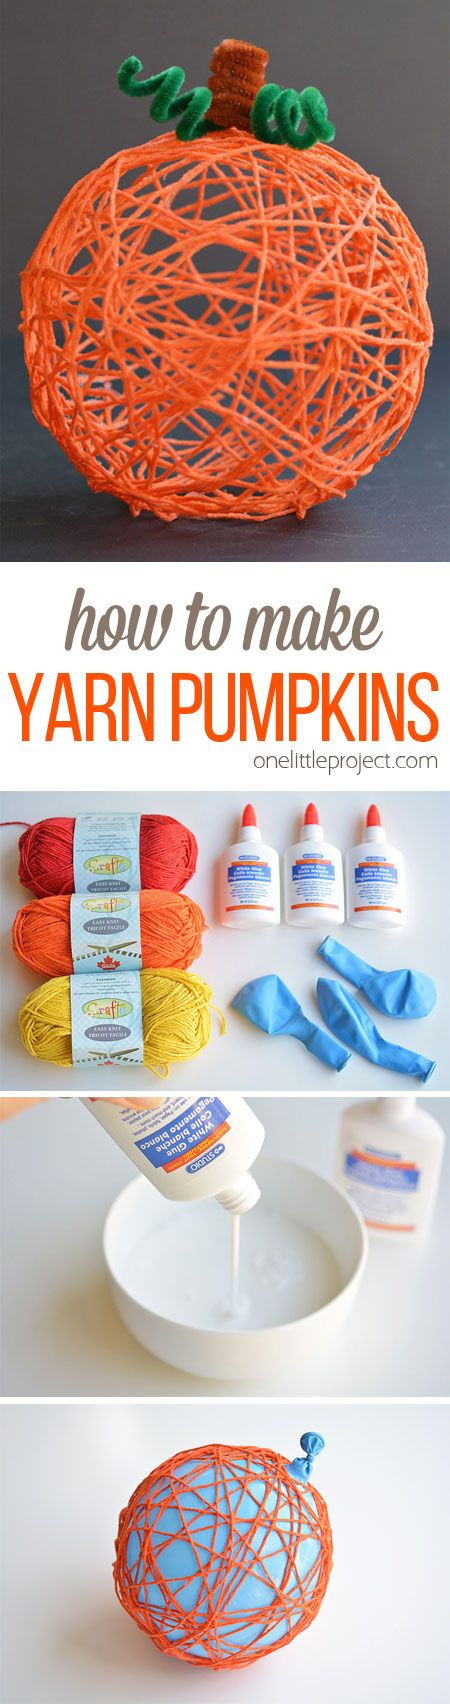 How to Make Yarn Pumpkins Using Balloons